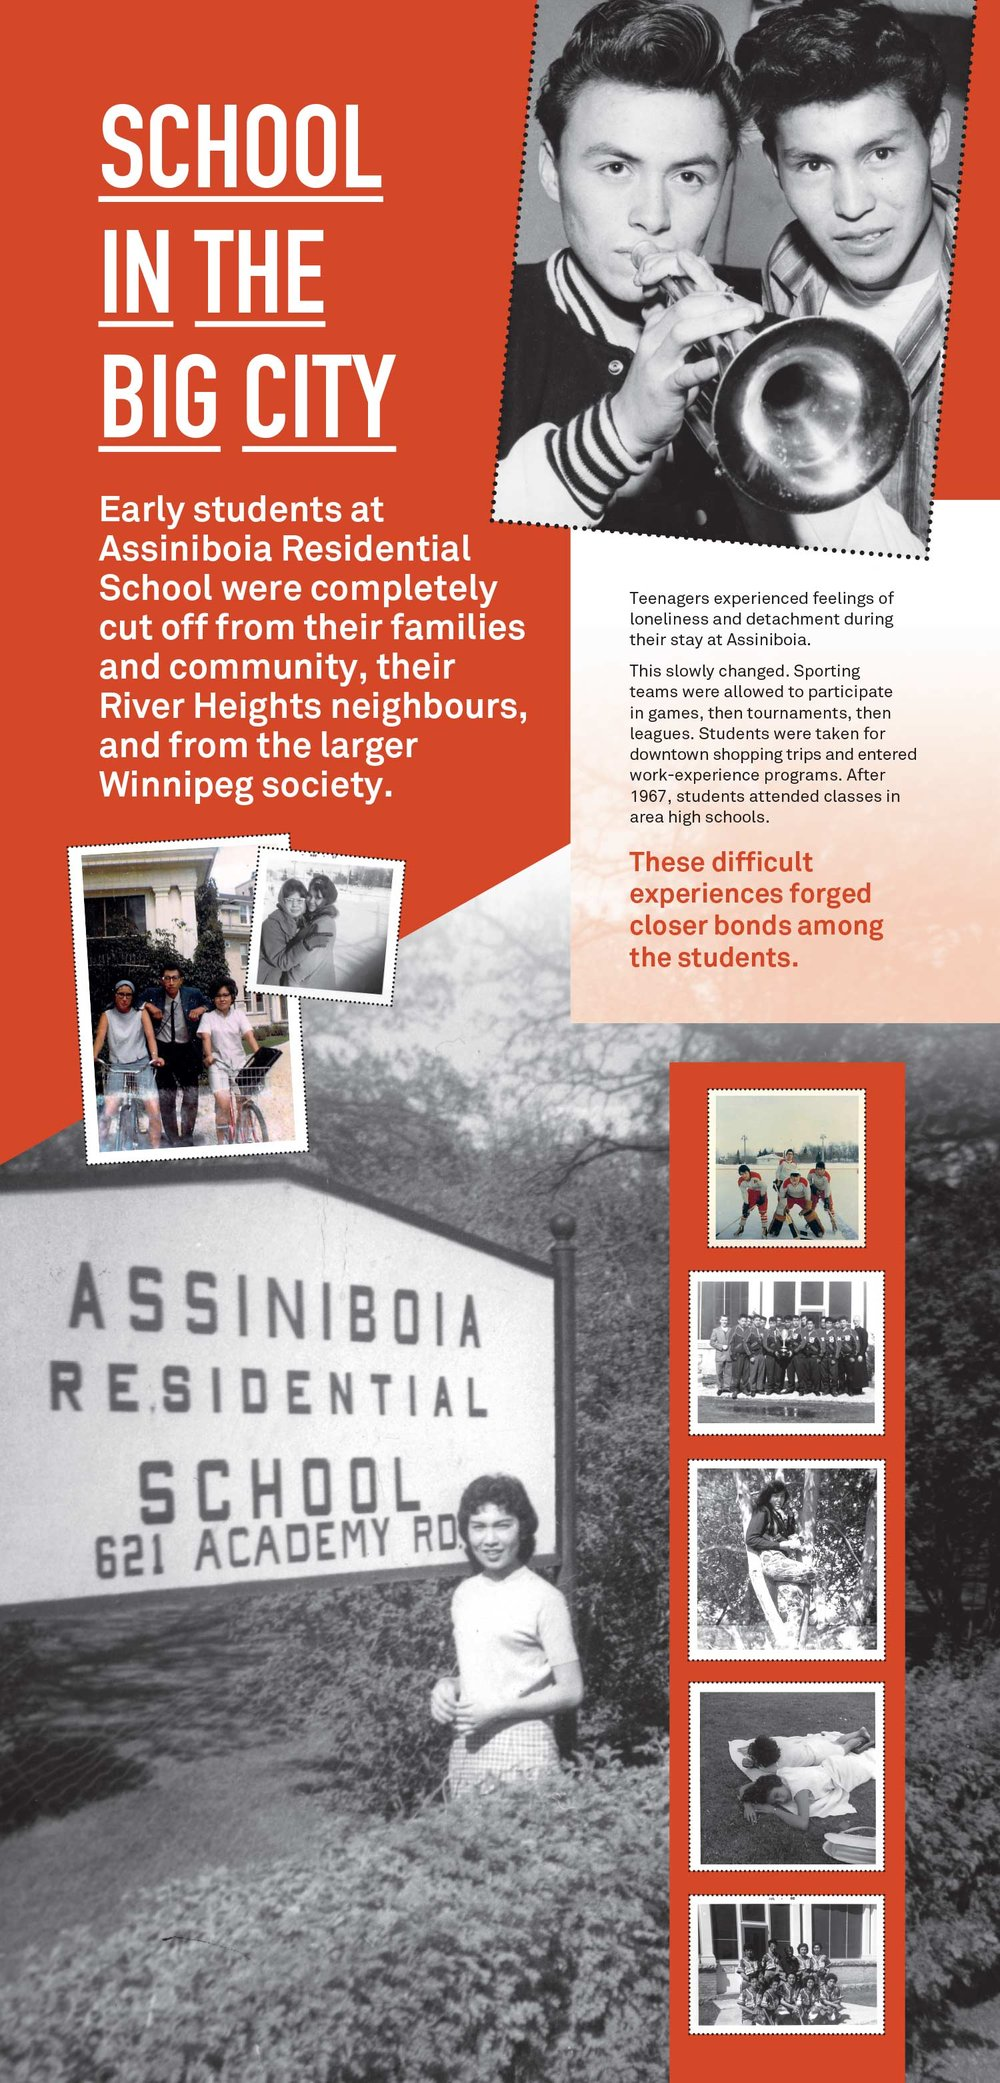 city-winnipeg-residential-school-display-aniko-szabo3.jpg